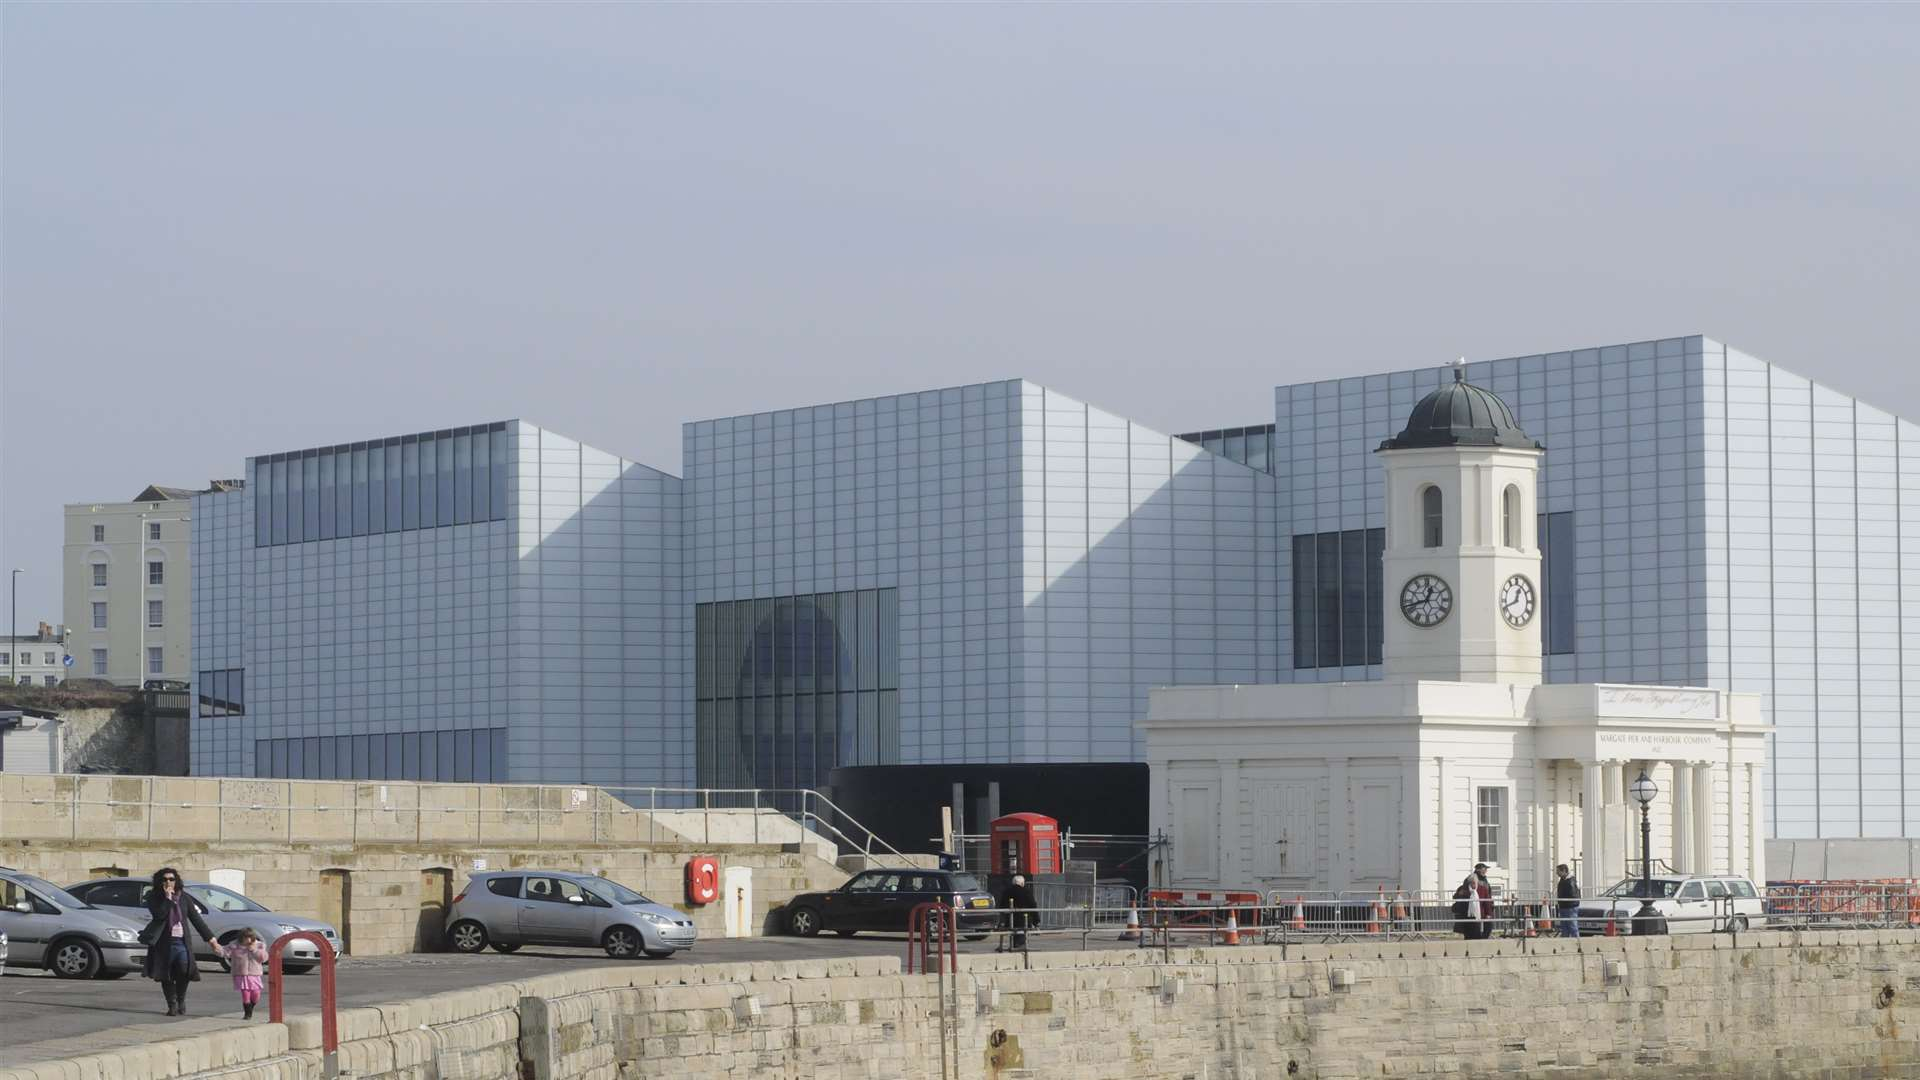 The Turner Contemporary in Margate attracted nearly a million people to the town in the last five years